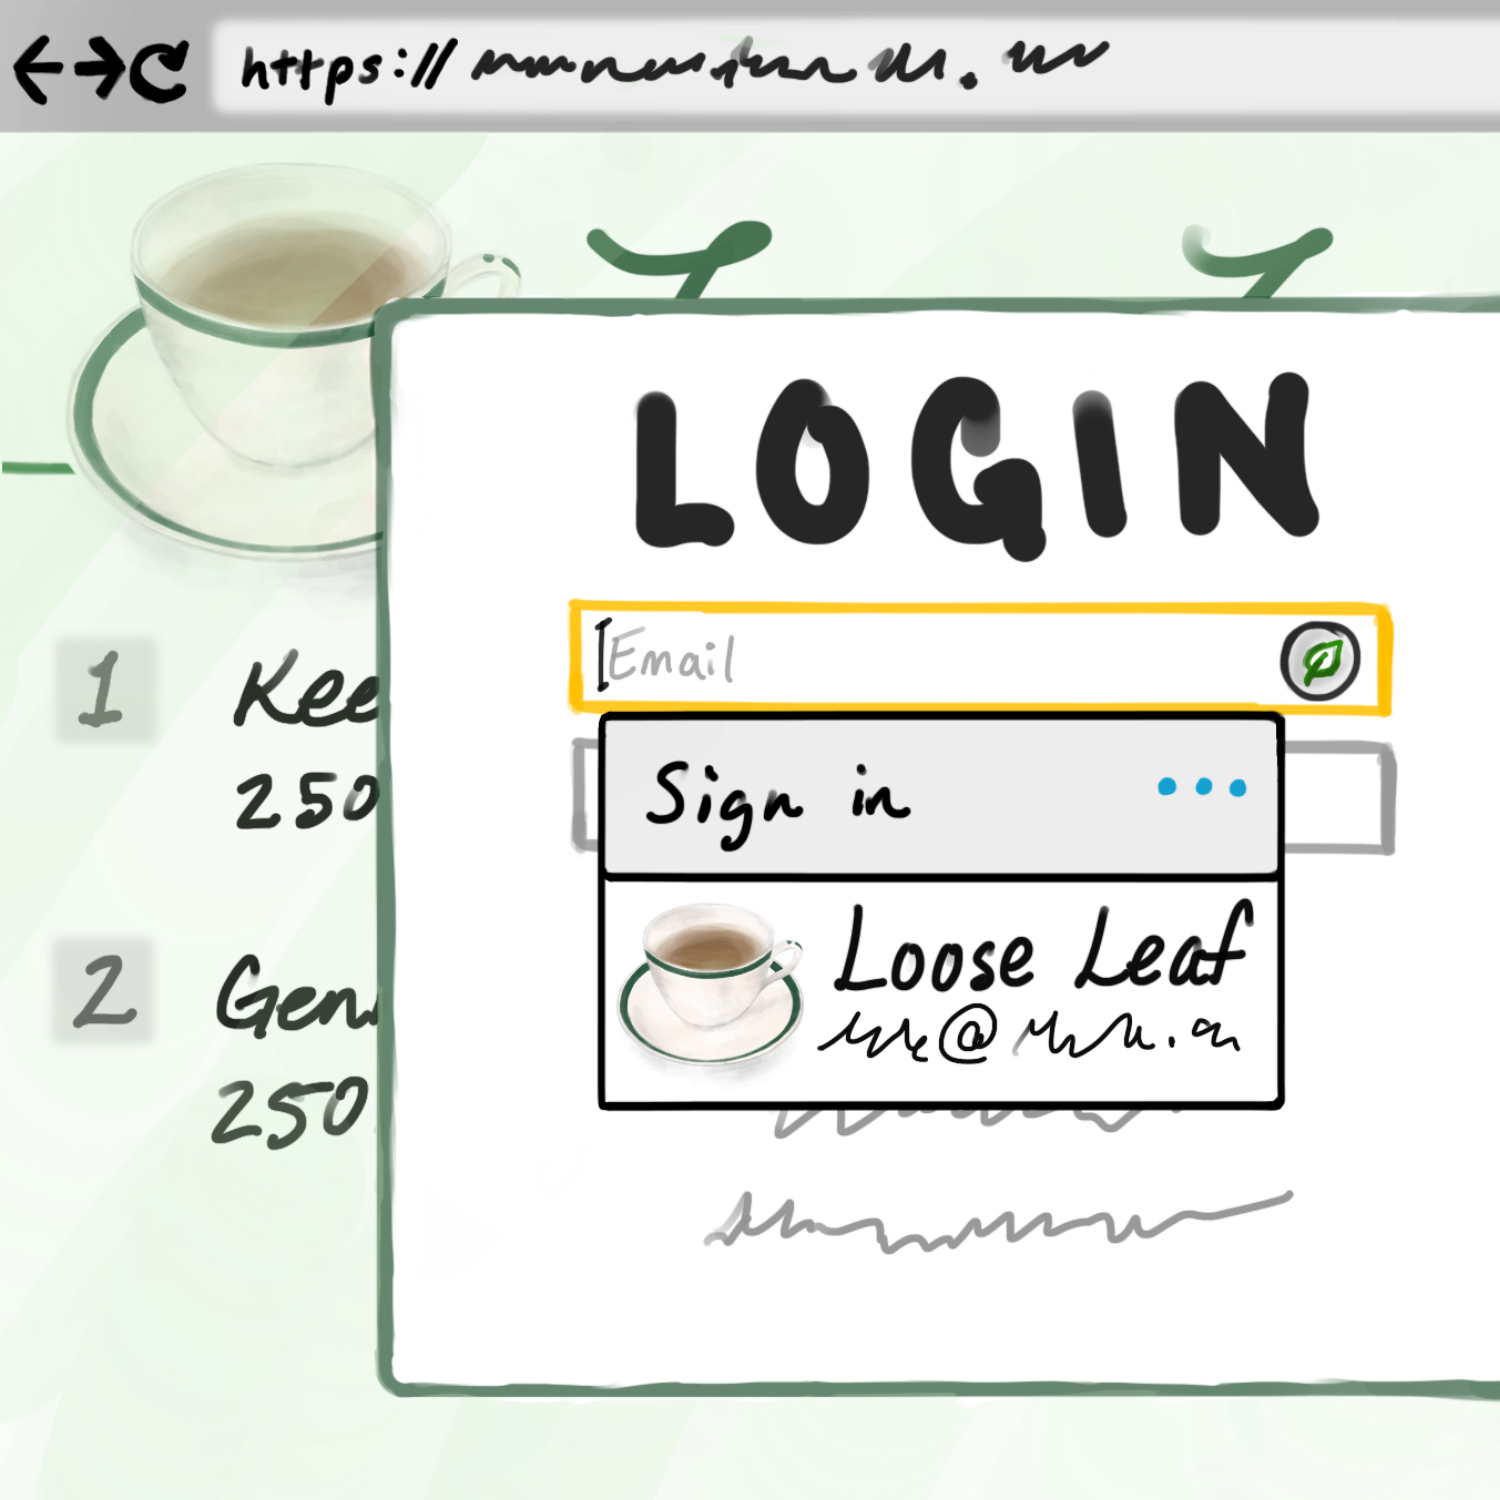 A password manager autofilling for a login screen for a website listed in the password manager as 'Loose Leaf'